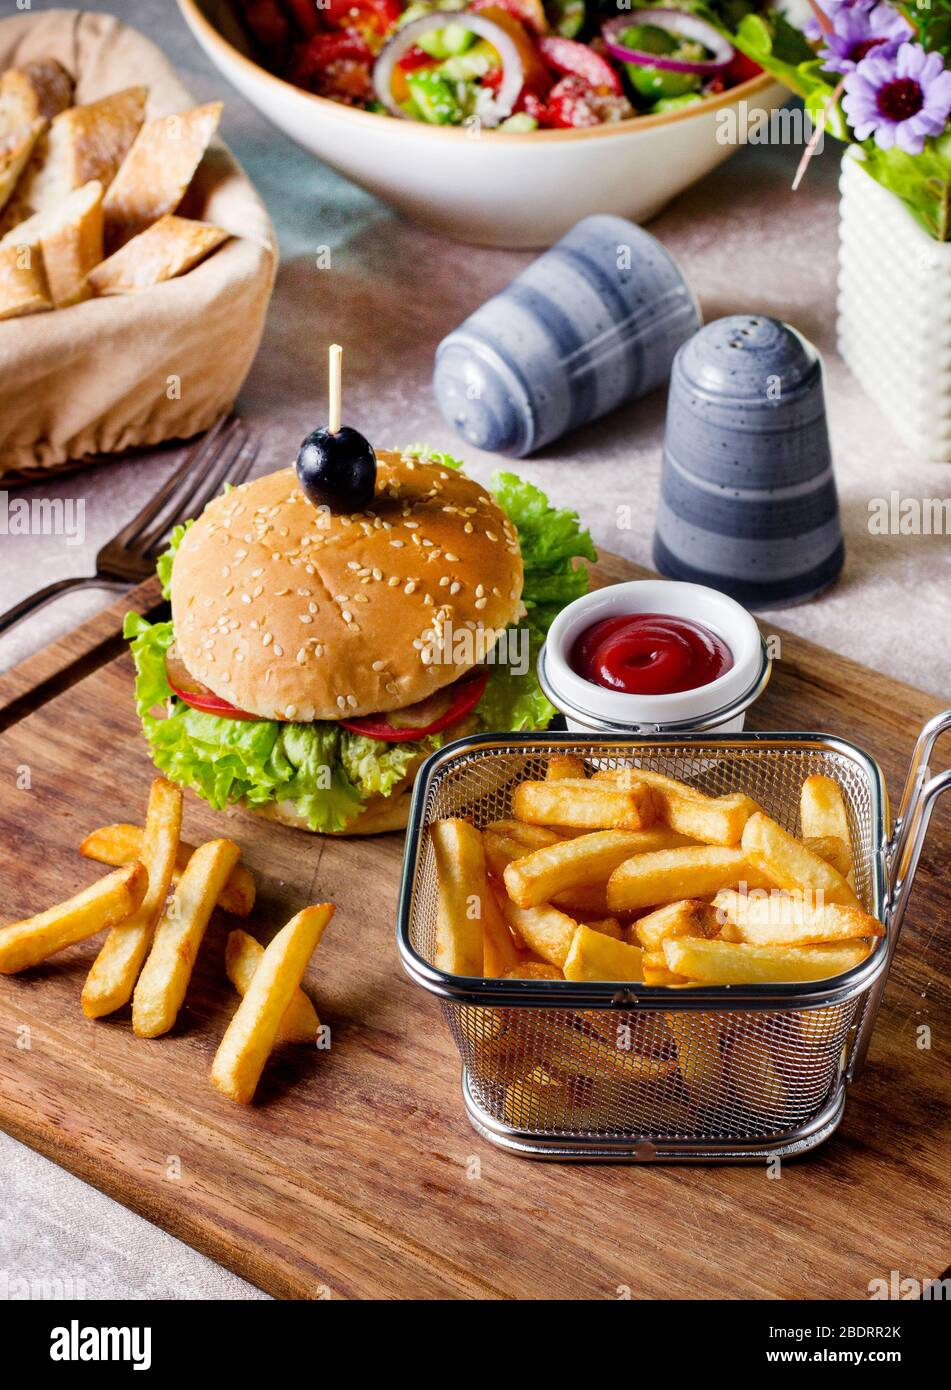 beef burger served with french fries basket Stock Photo